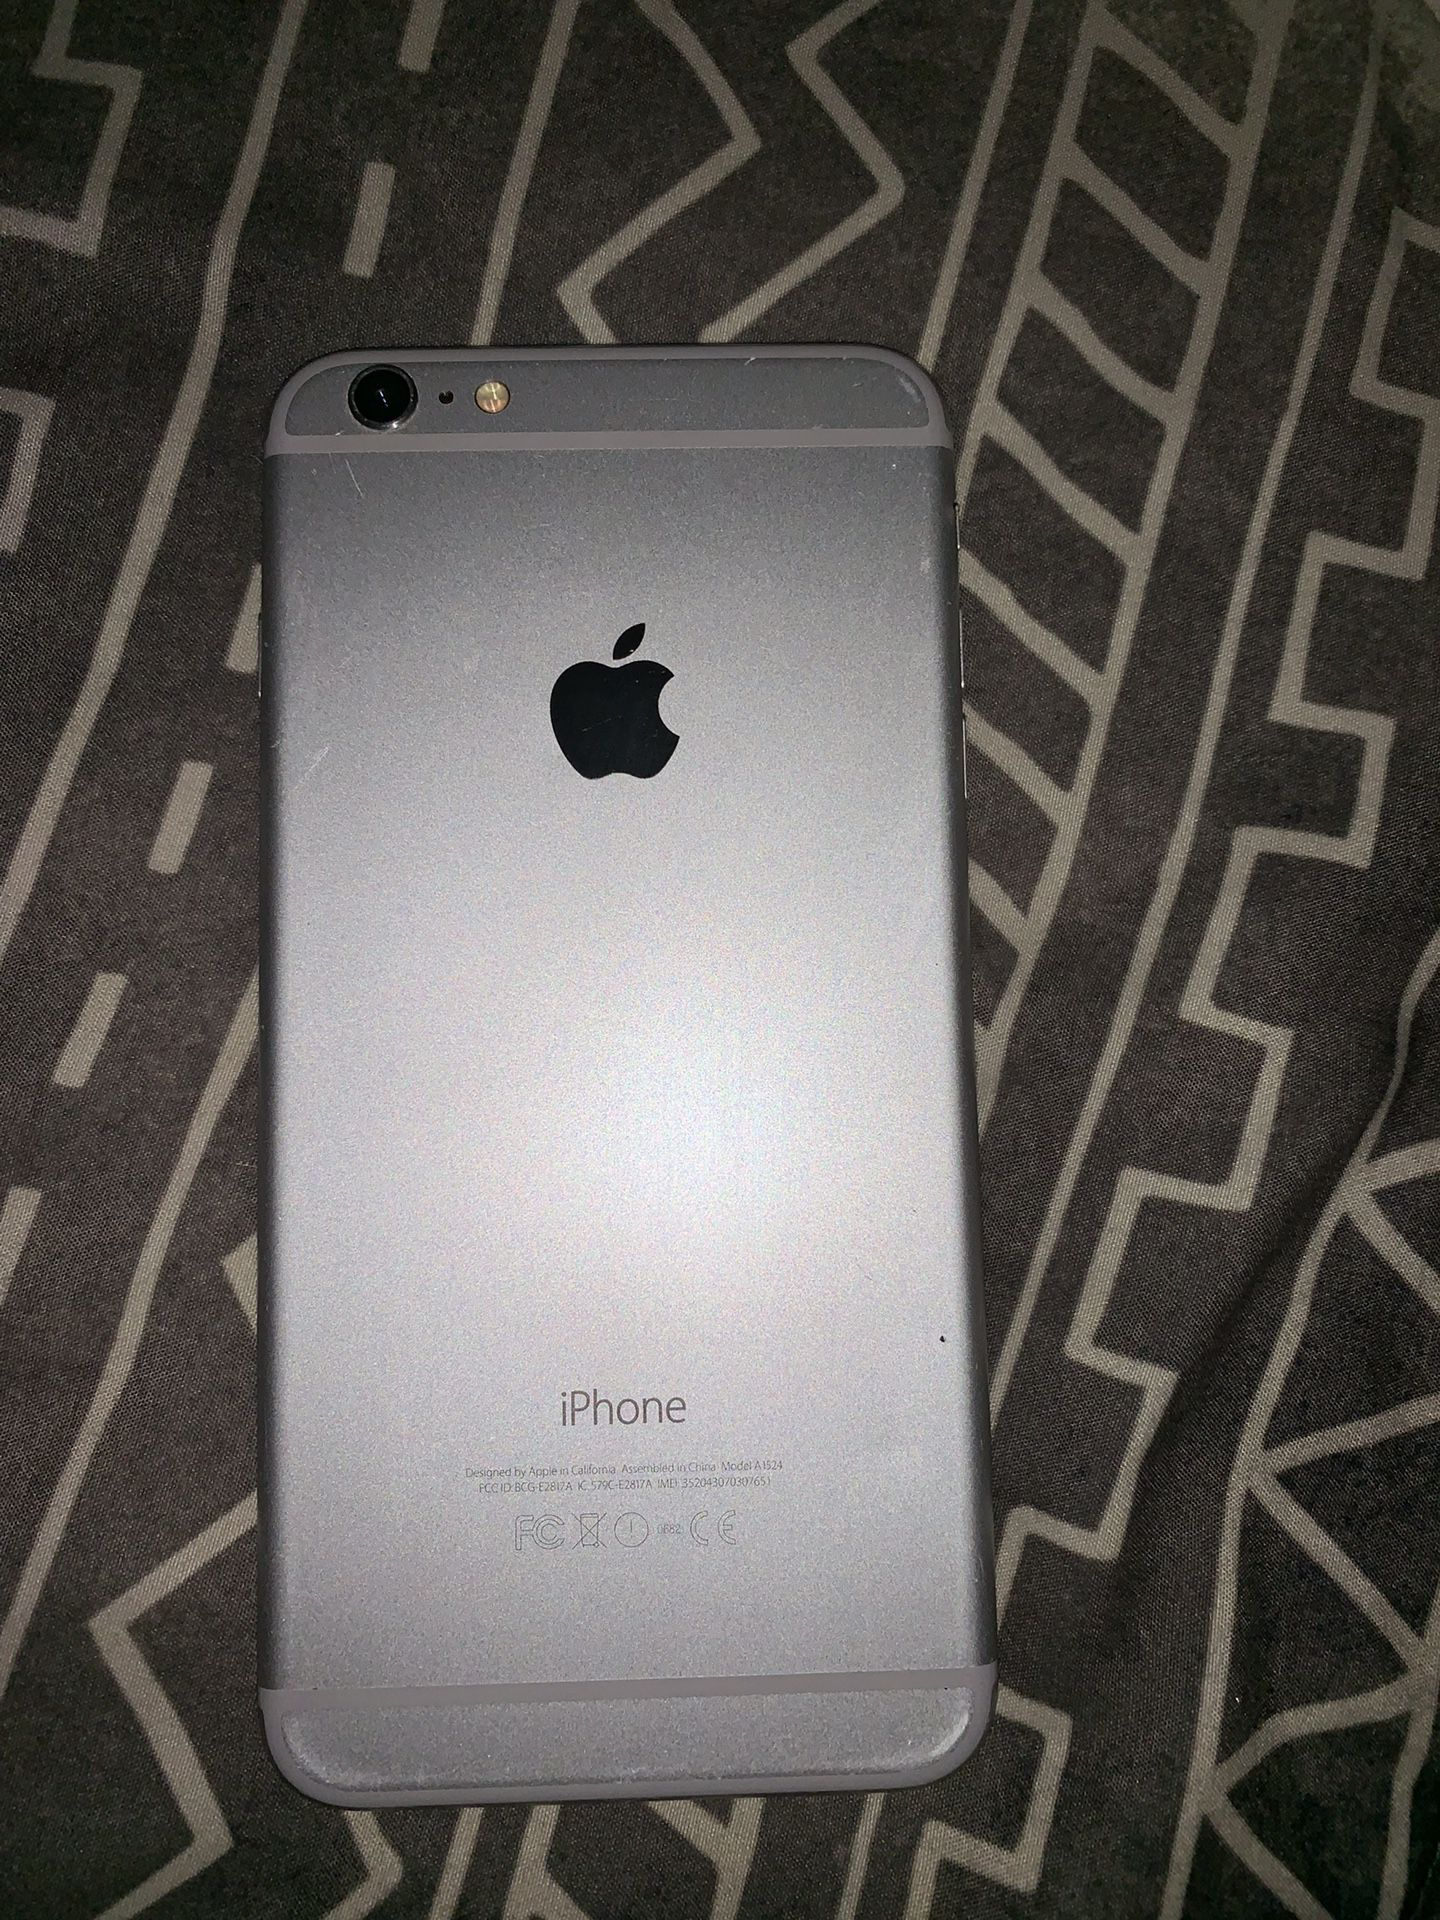 iPhone 6 Plus( willing to trade for Apple Watch or iPad mini)